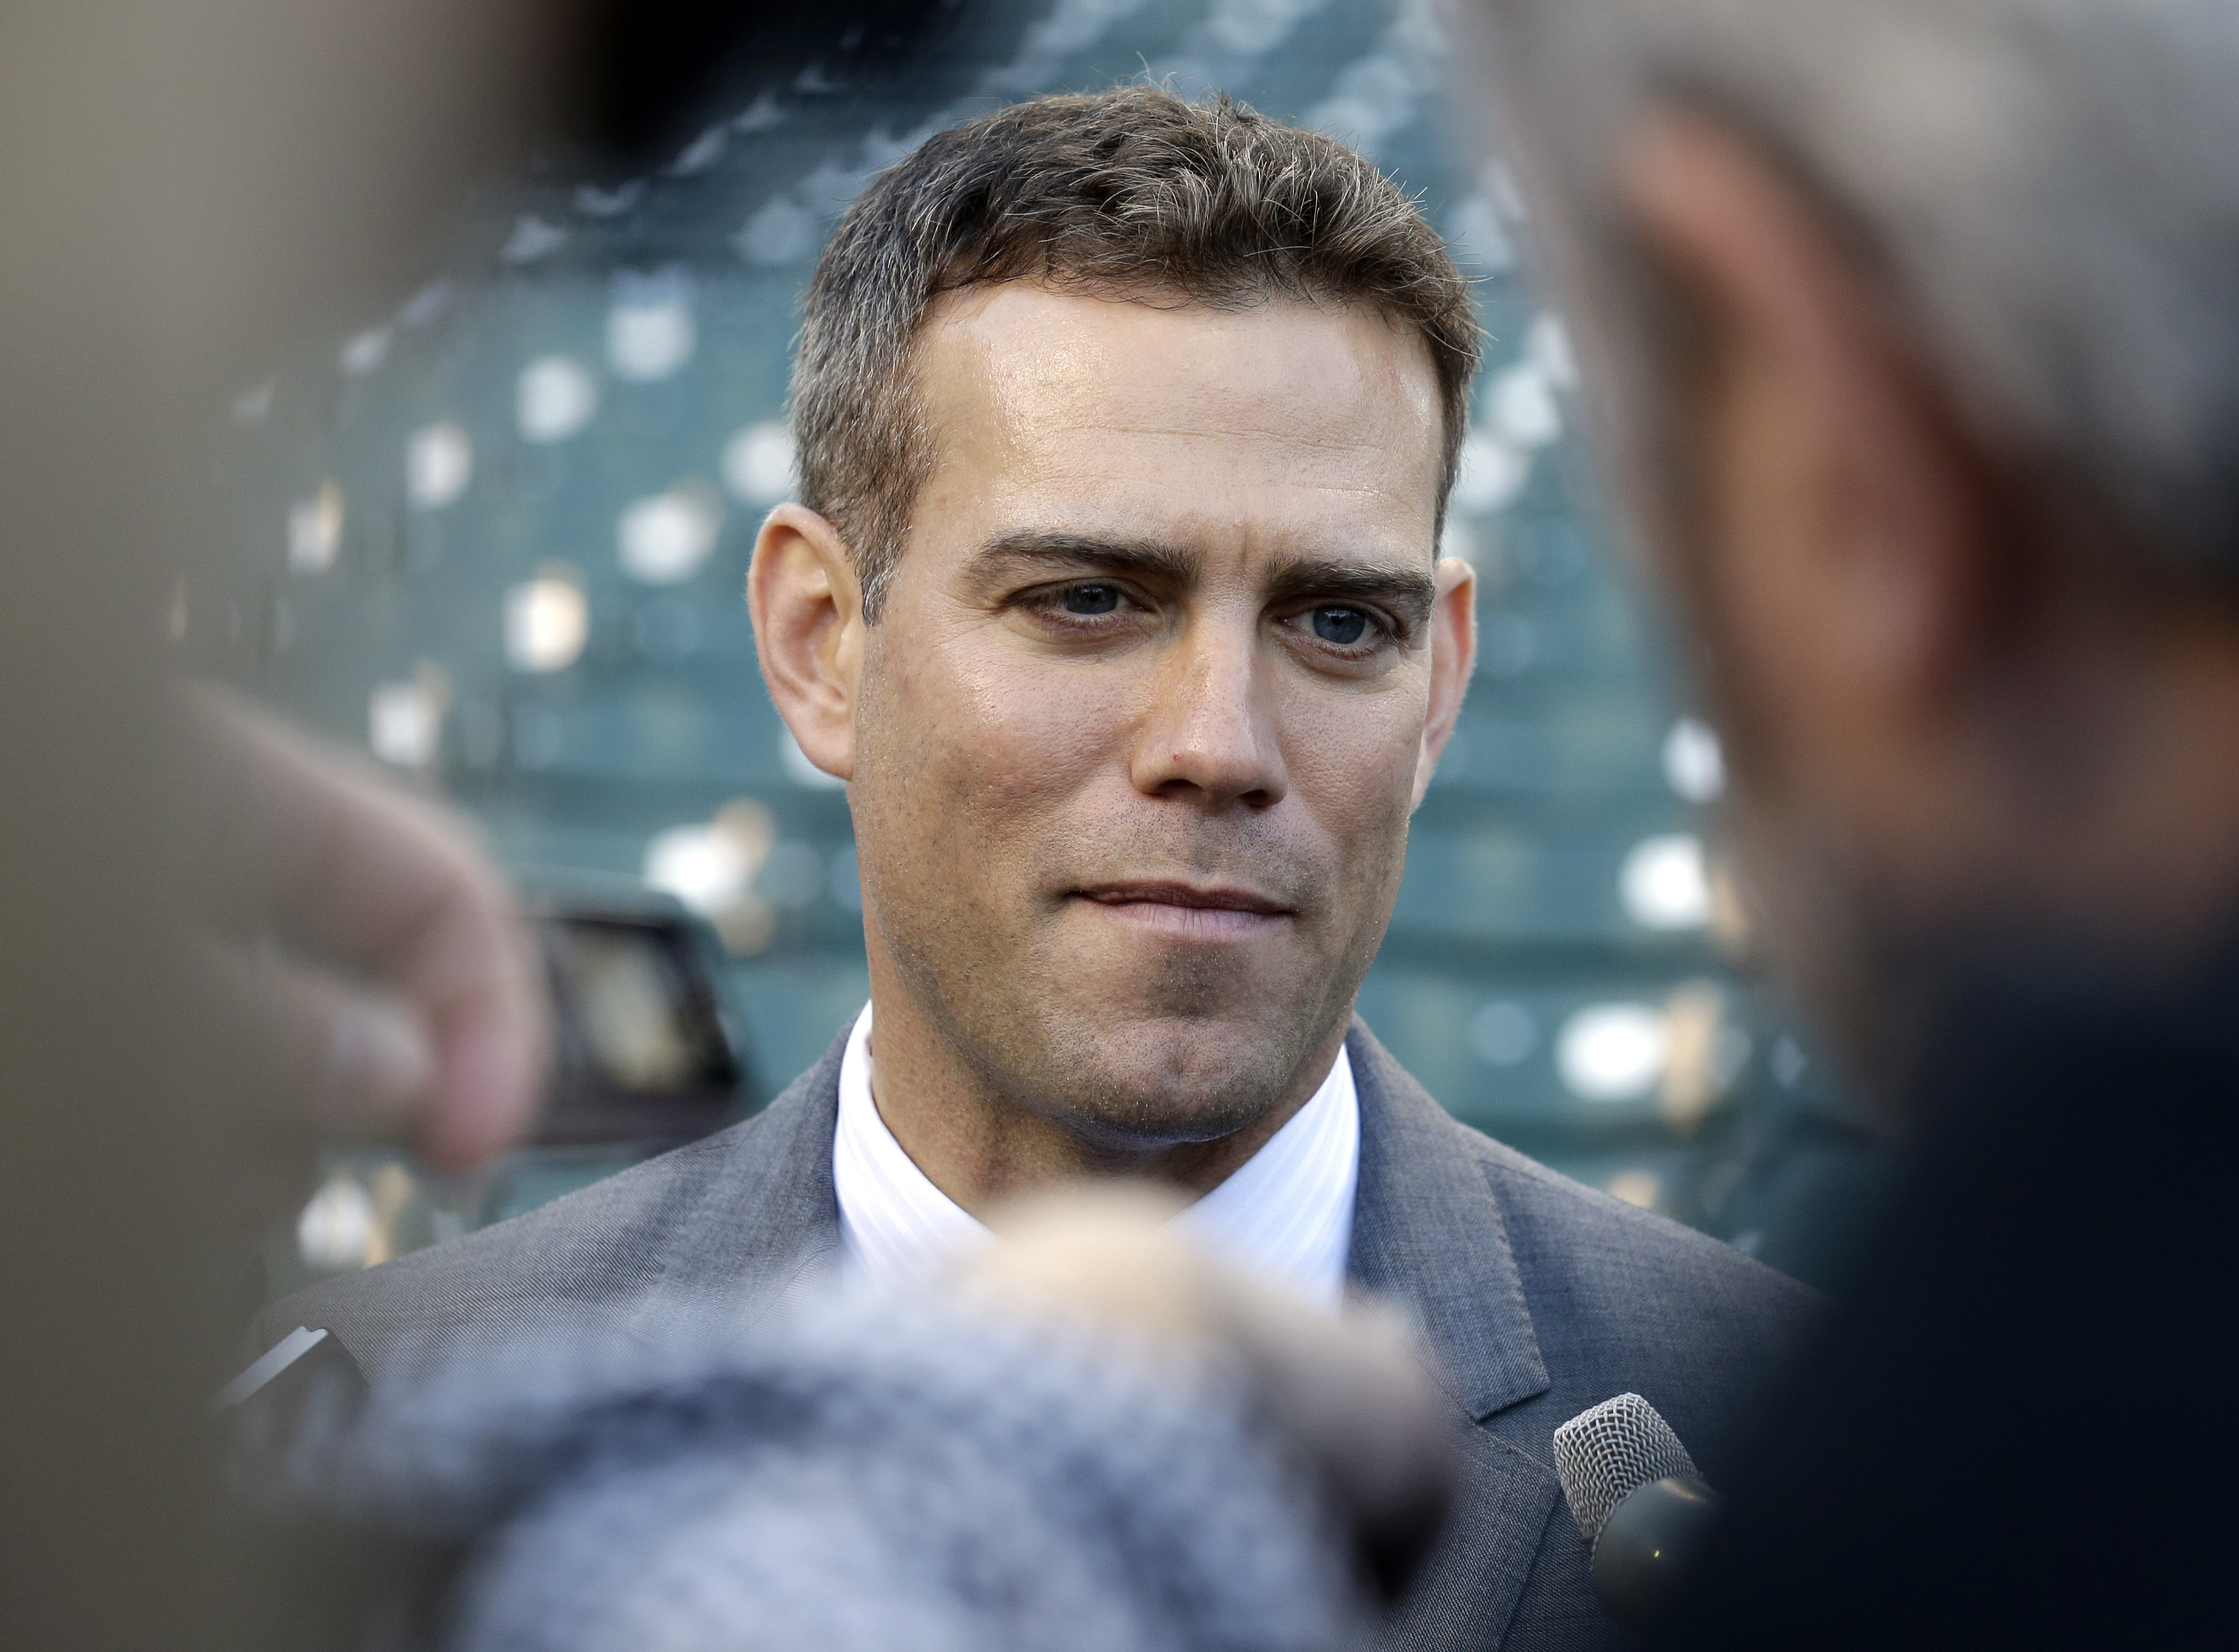 FILE - In this Monday, April 11, 2016 file photo, Chicago Cubs president Theo Epstein talks to media at Wrigley Field before the start of an opening day baseball game between the Cincinnati Reds and the Chicago Cubs in Chicago. The Chicago Cubs have agree